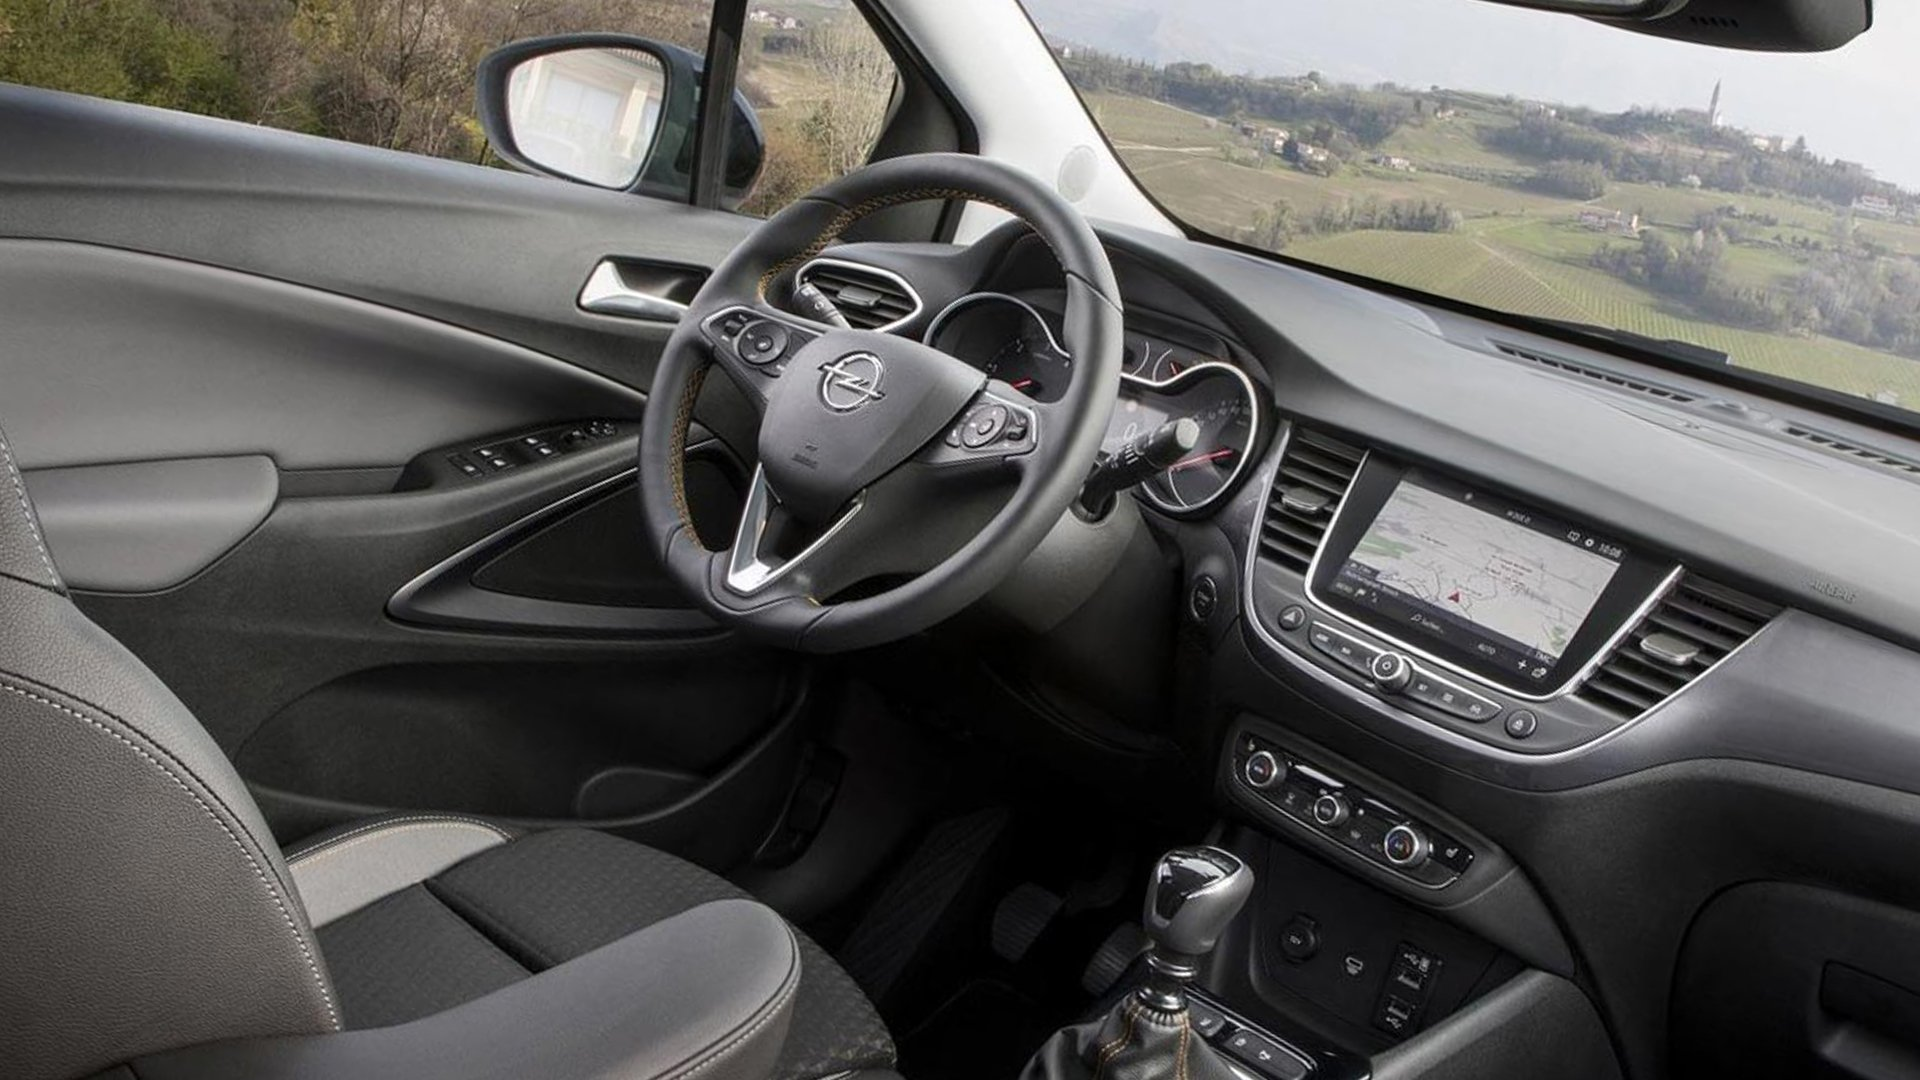 New 2019 Opel Crossland X Interior Design